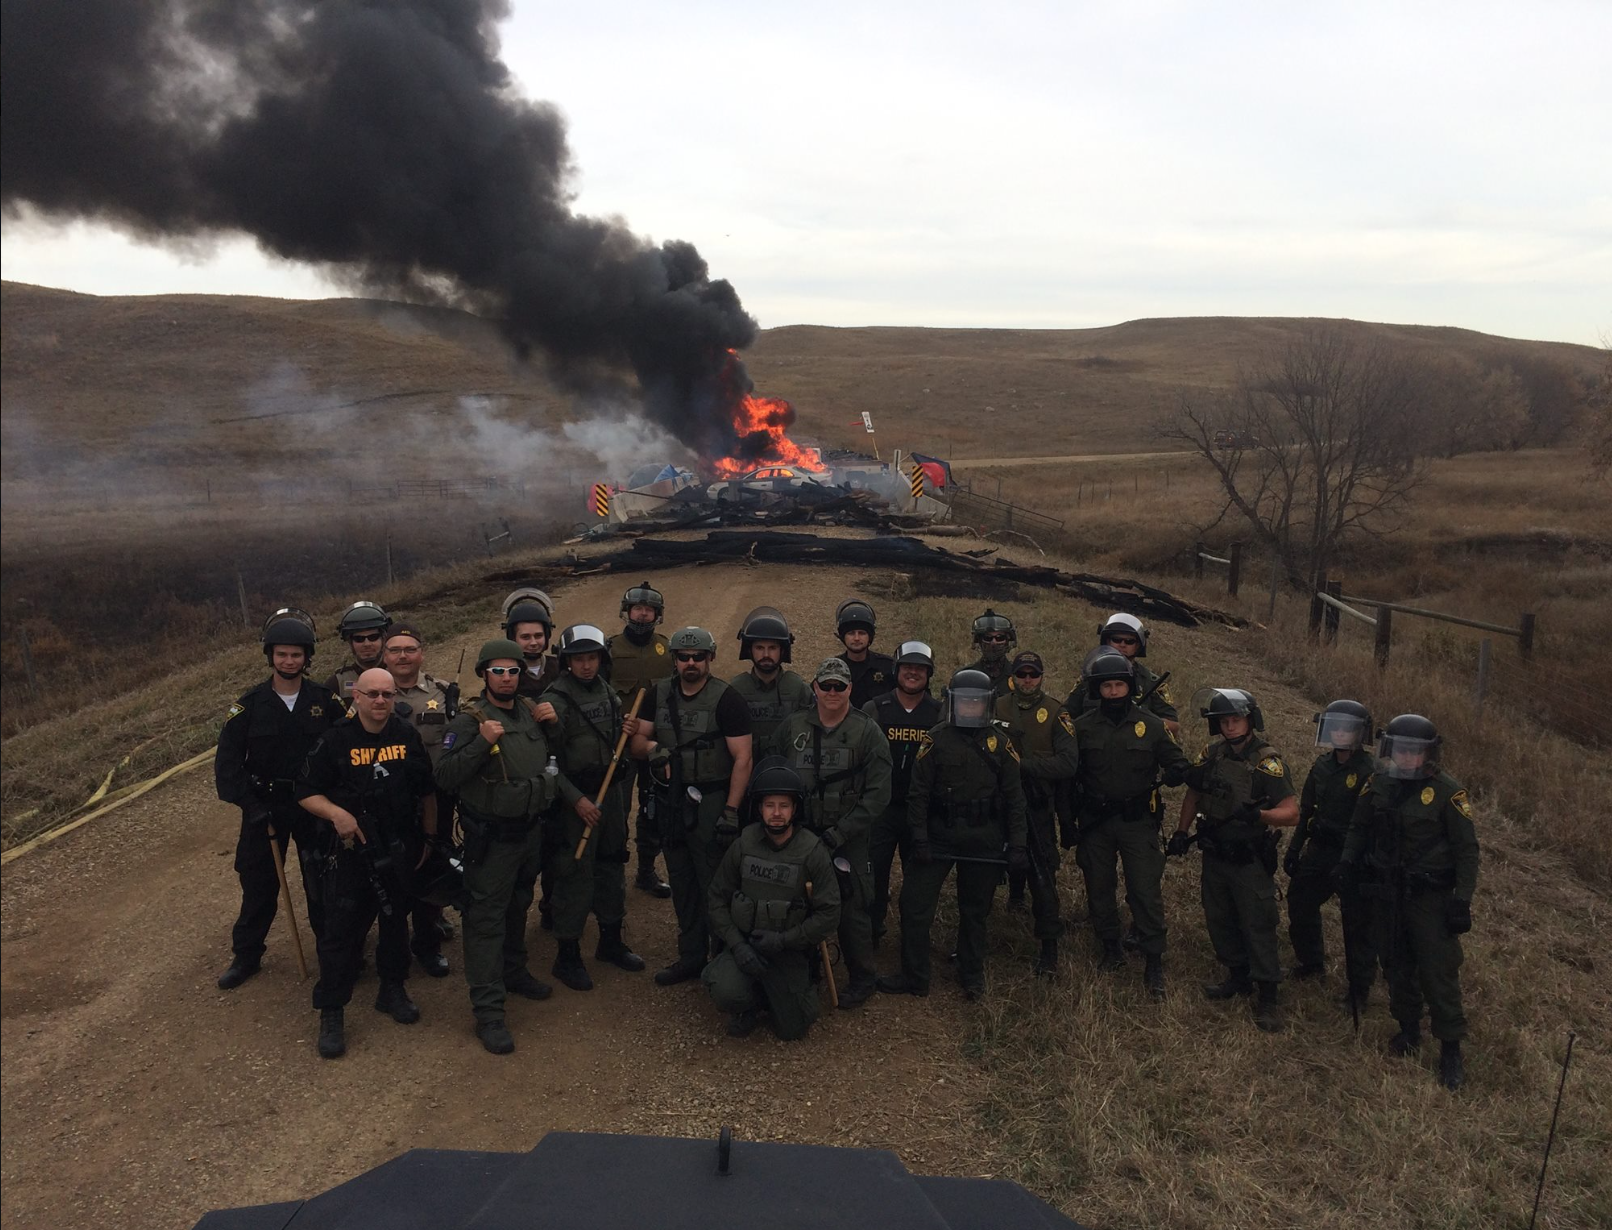 Police gather for a photo opp before a roadblock setup by activists, reports differ on who set the debris on fire - photo provided by online sources